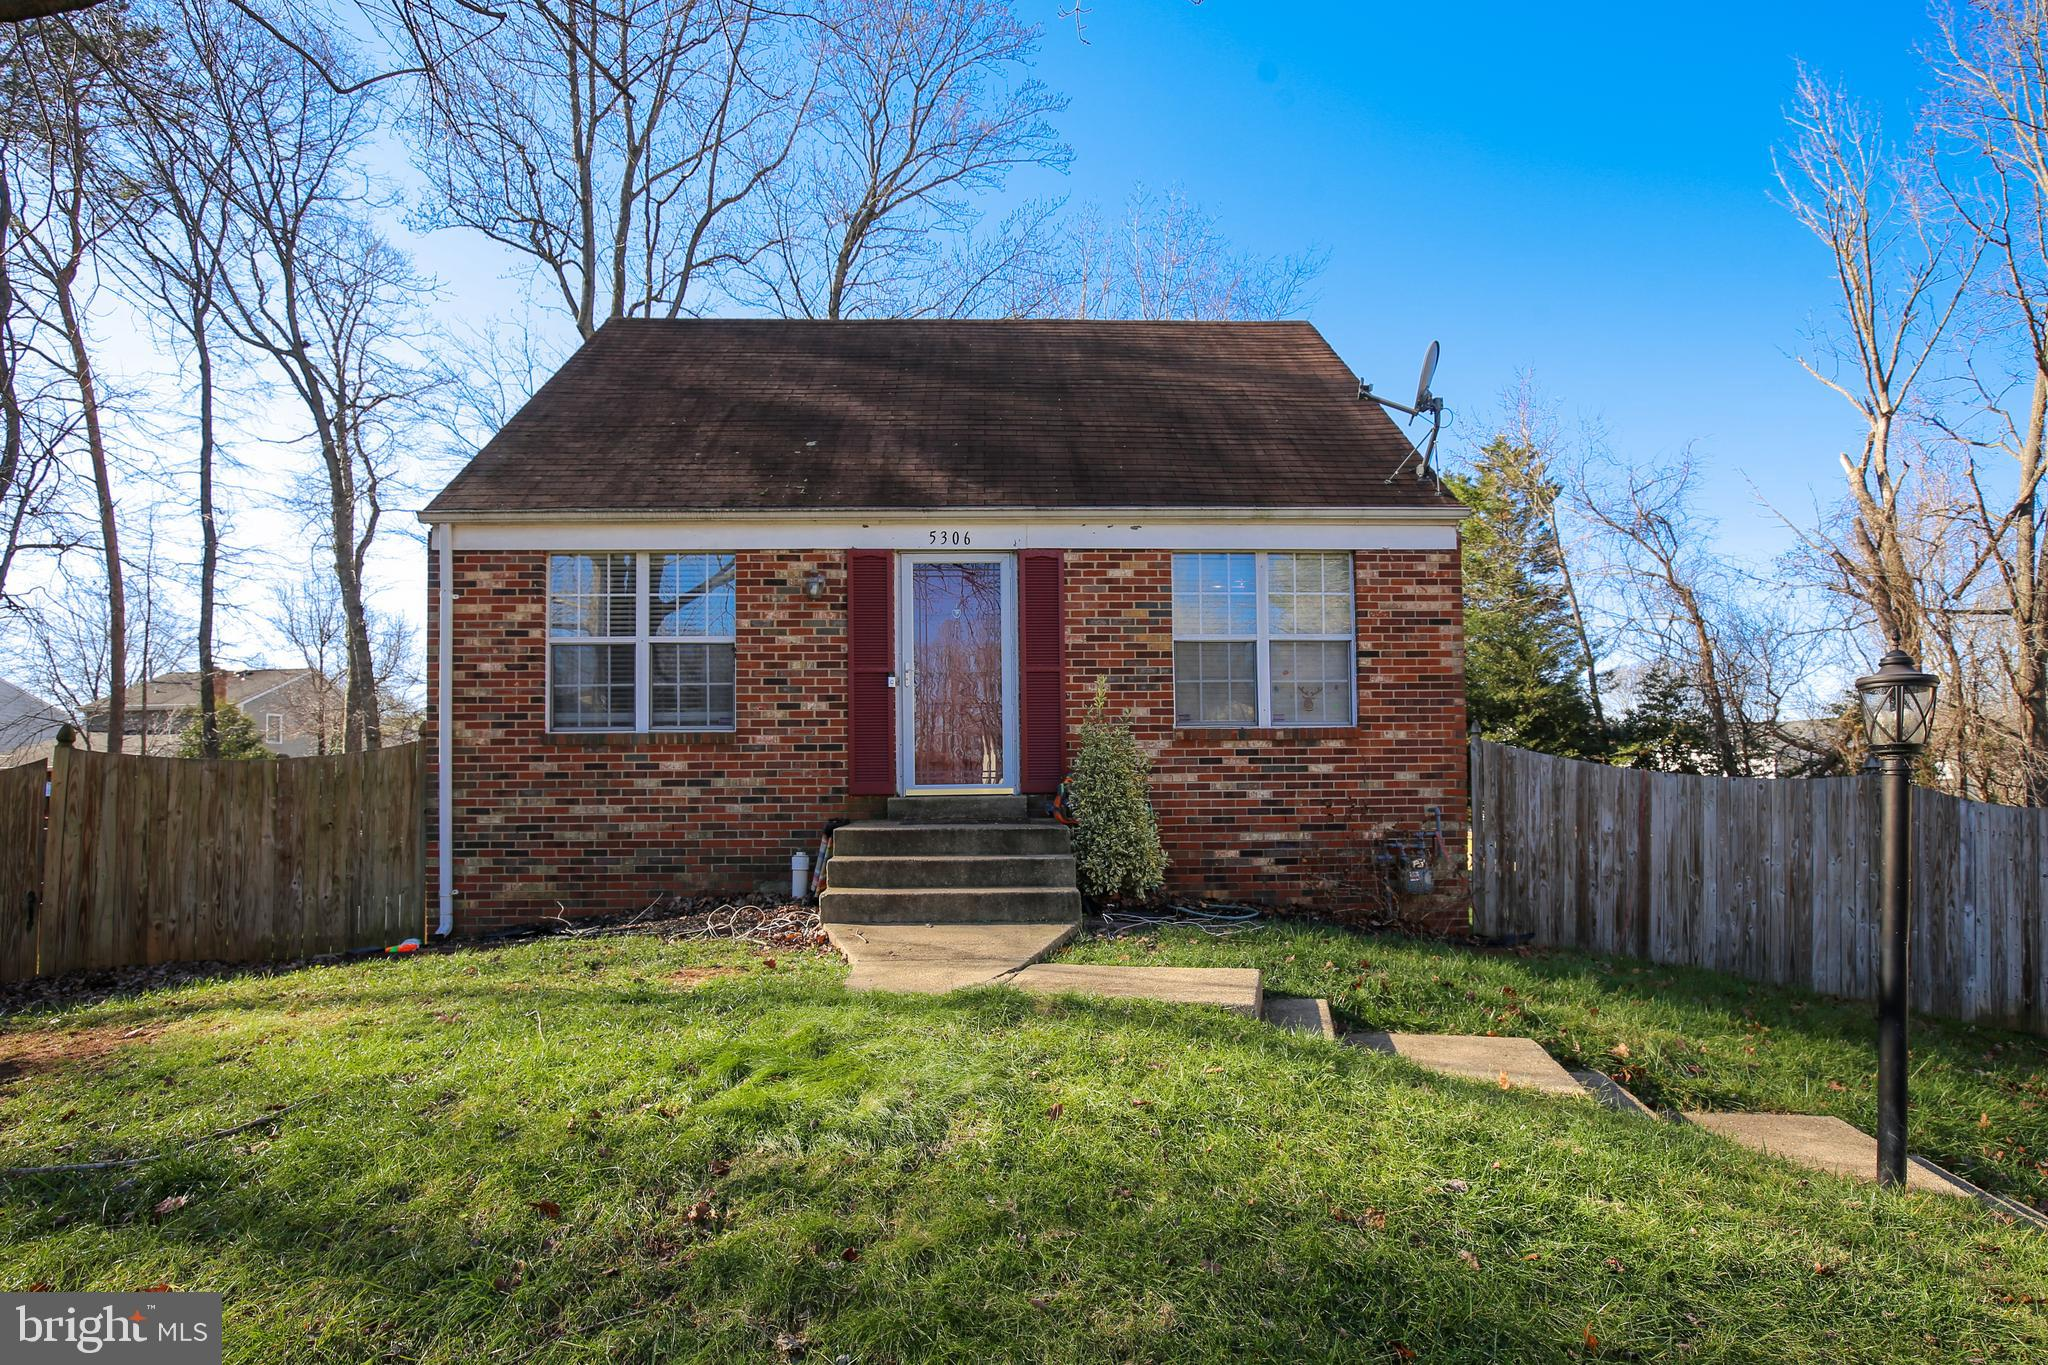 This single family home has a lot to offer with a brick front huge fenced in backyard. The driveway